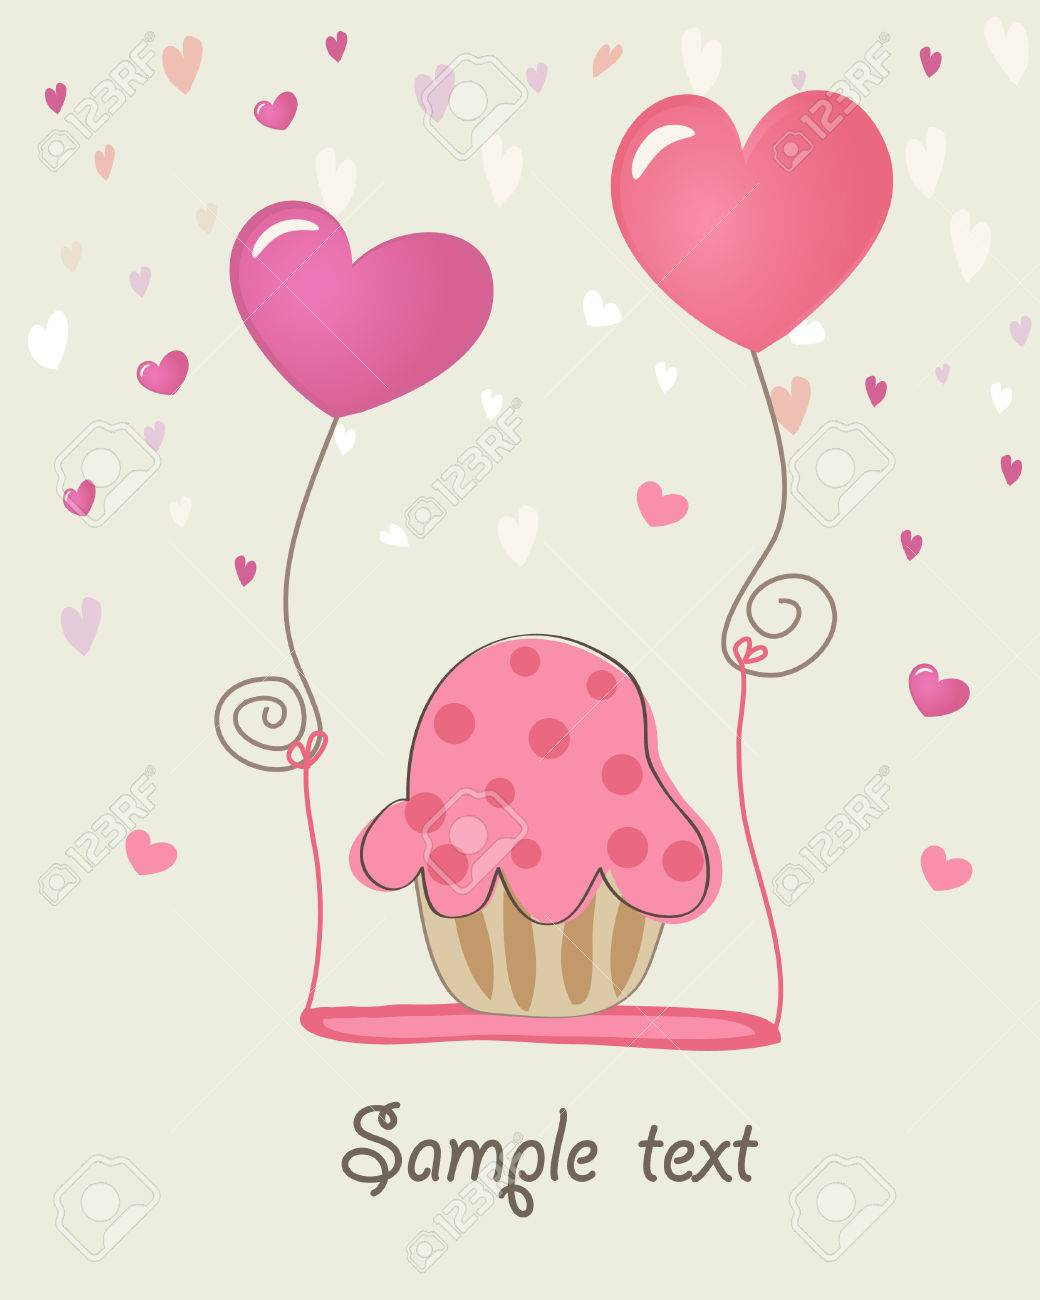 Cupcake Valentine Card Royalty Free Cliparts Vectors And – Cupcake Valentine Card